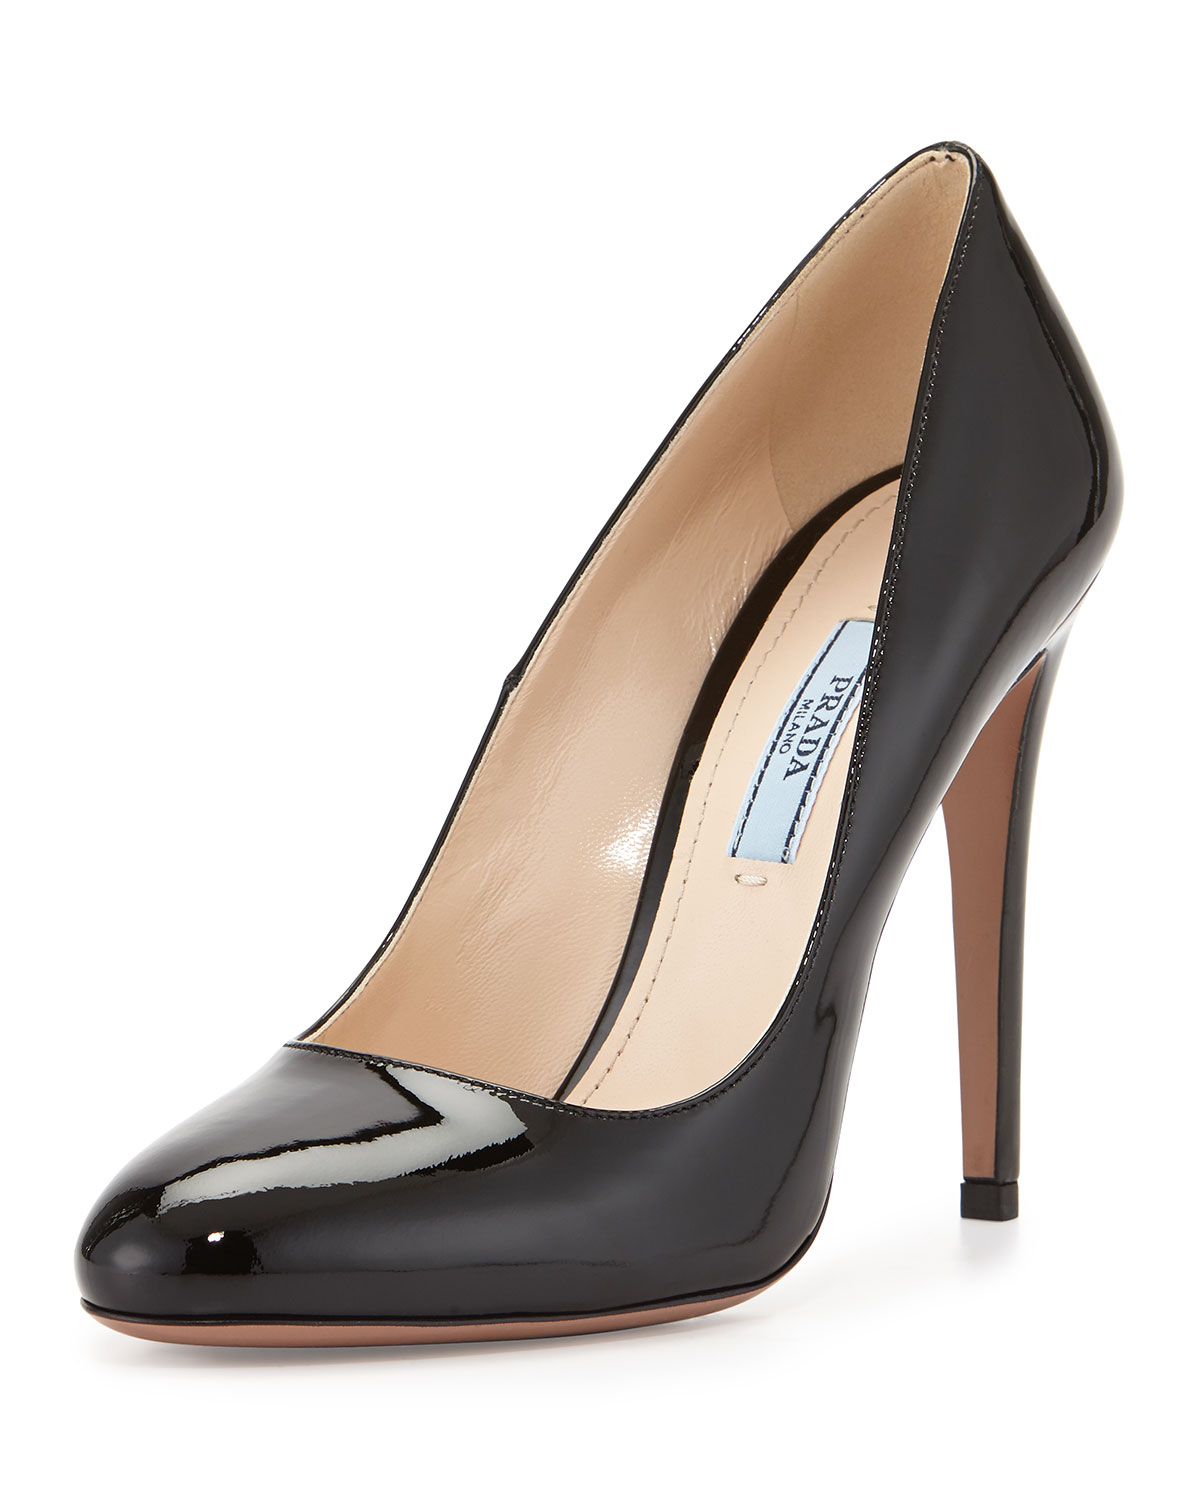 Prada Studded Round-Toe Pumps free shipping fast delivery QoQHvW8C0